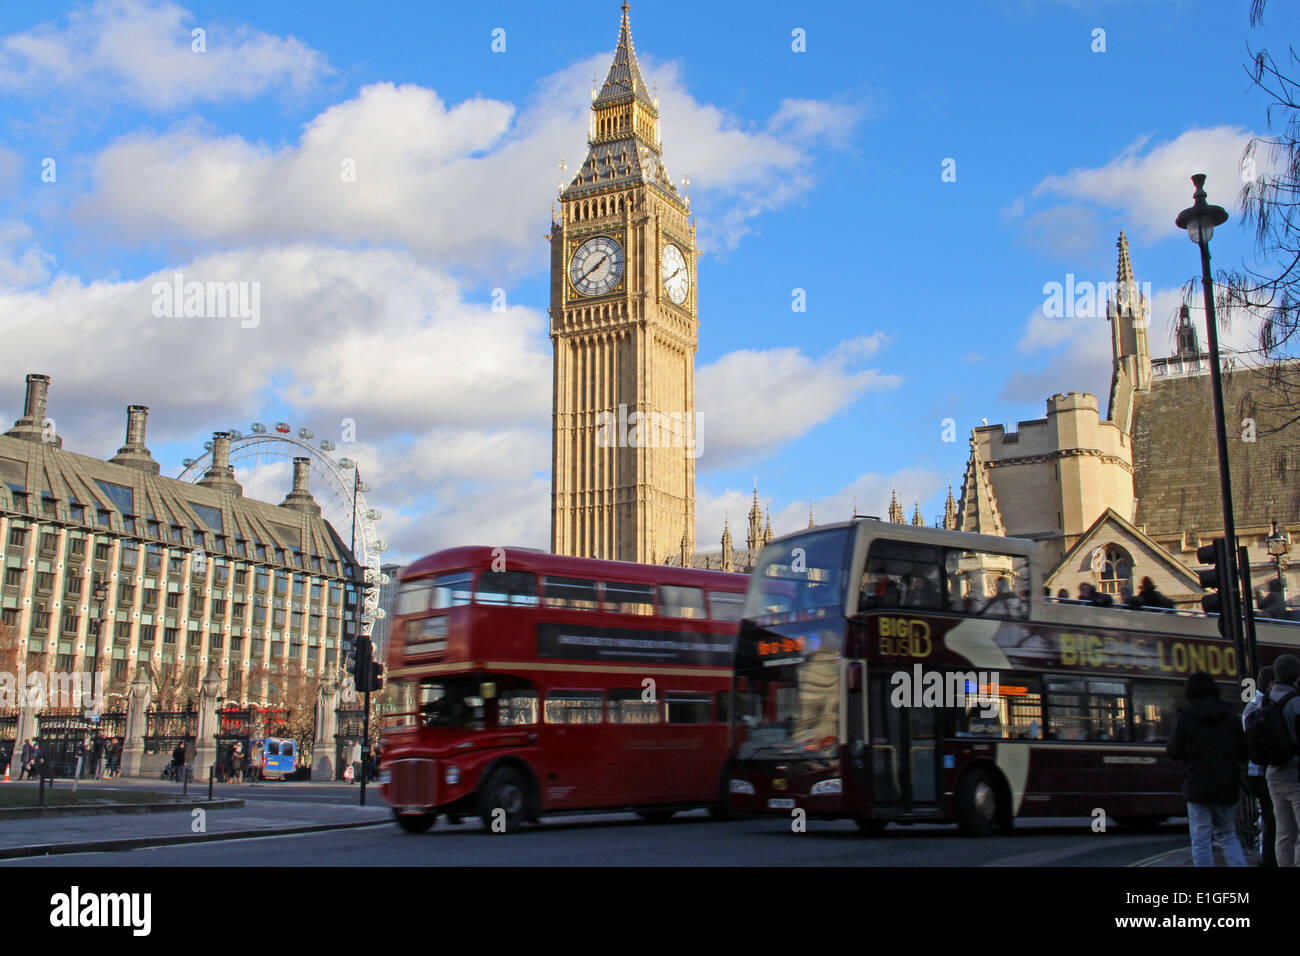 London: Palace of Westminster with Big Ben (Elizabeth Tower), 2014/01/11 Stock Photo